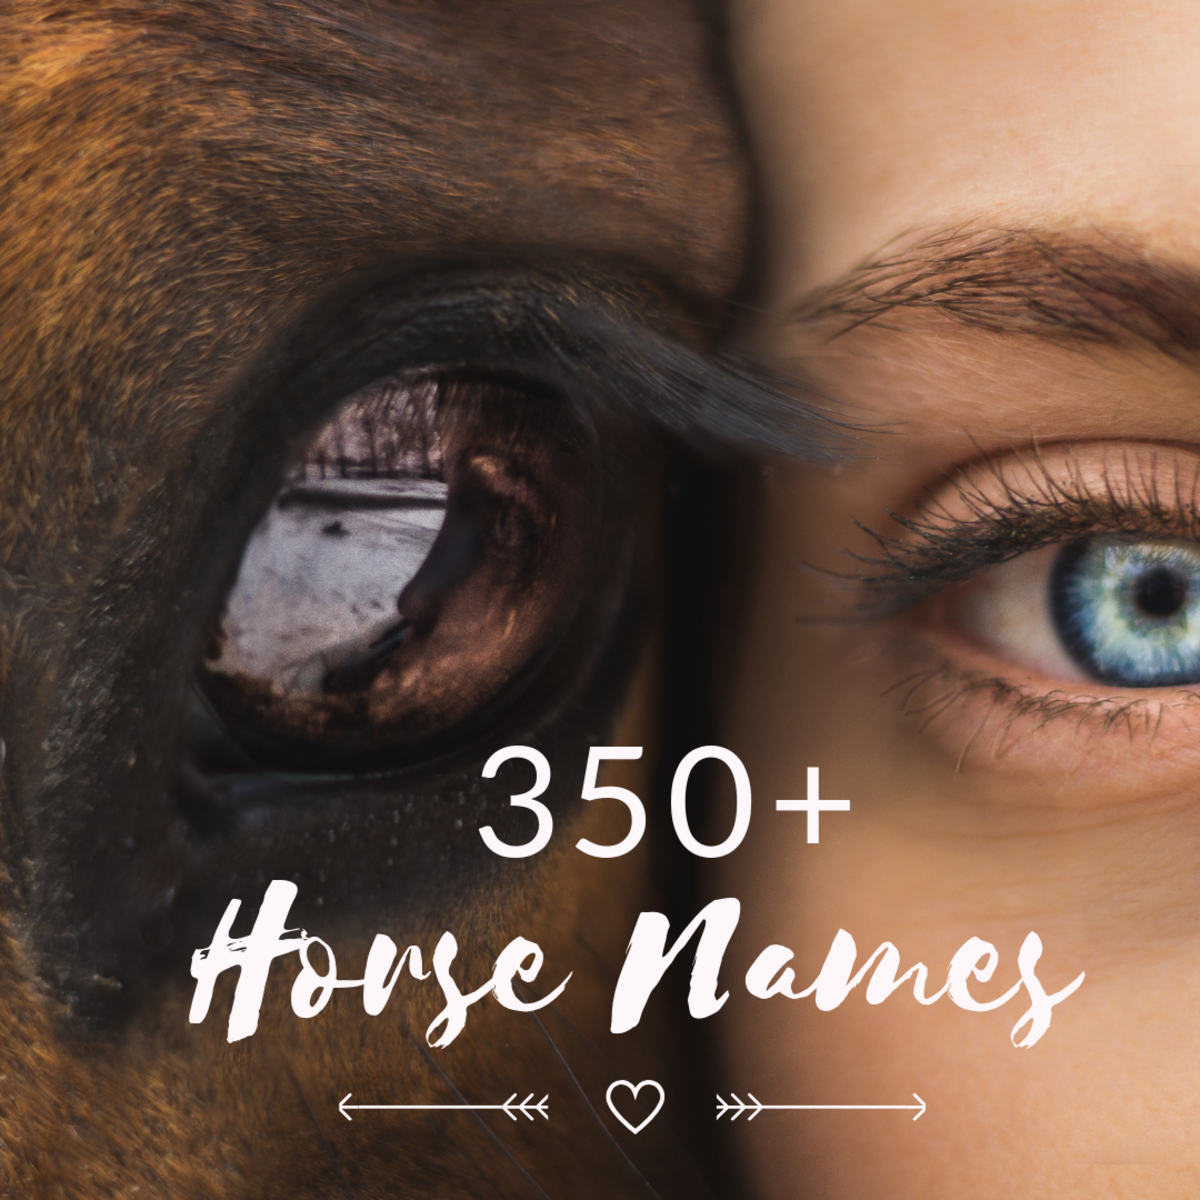 Horse name ideas for your beloved companion.